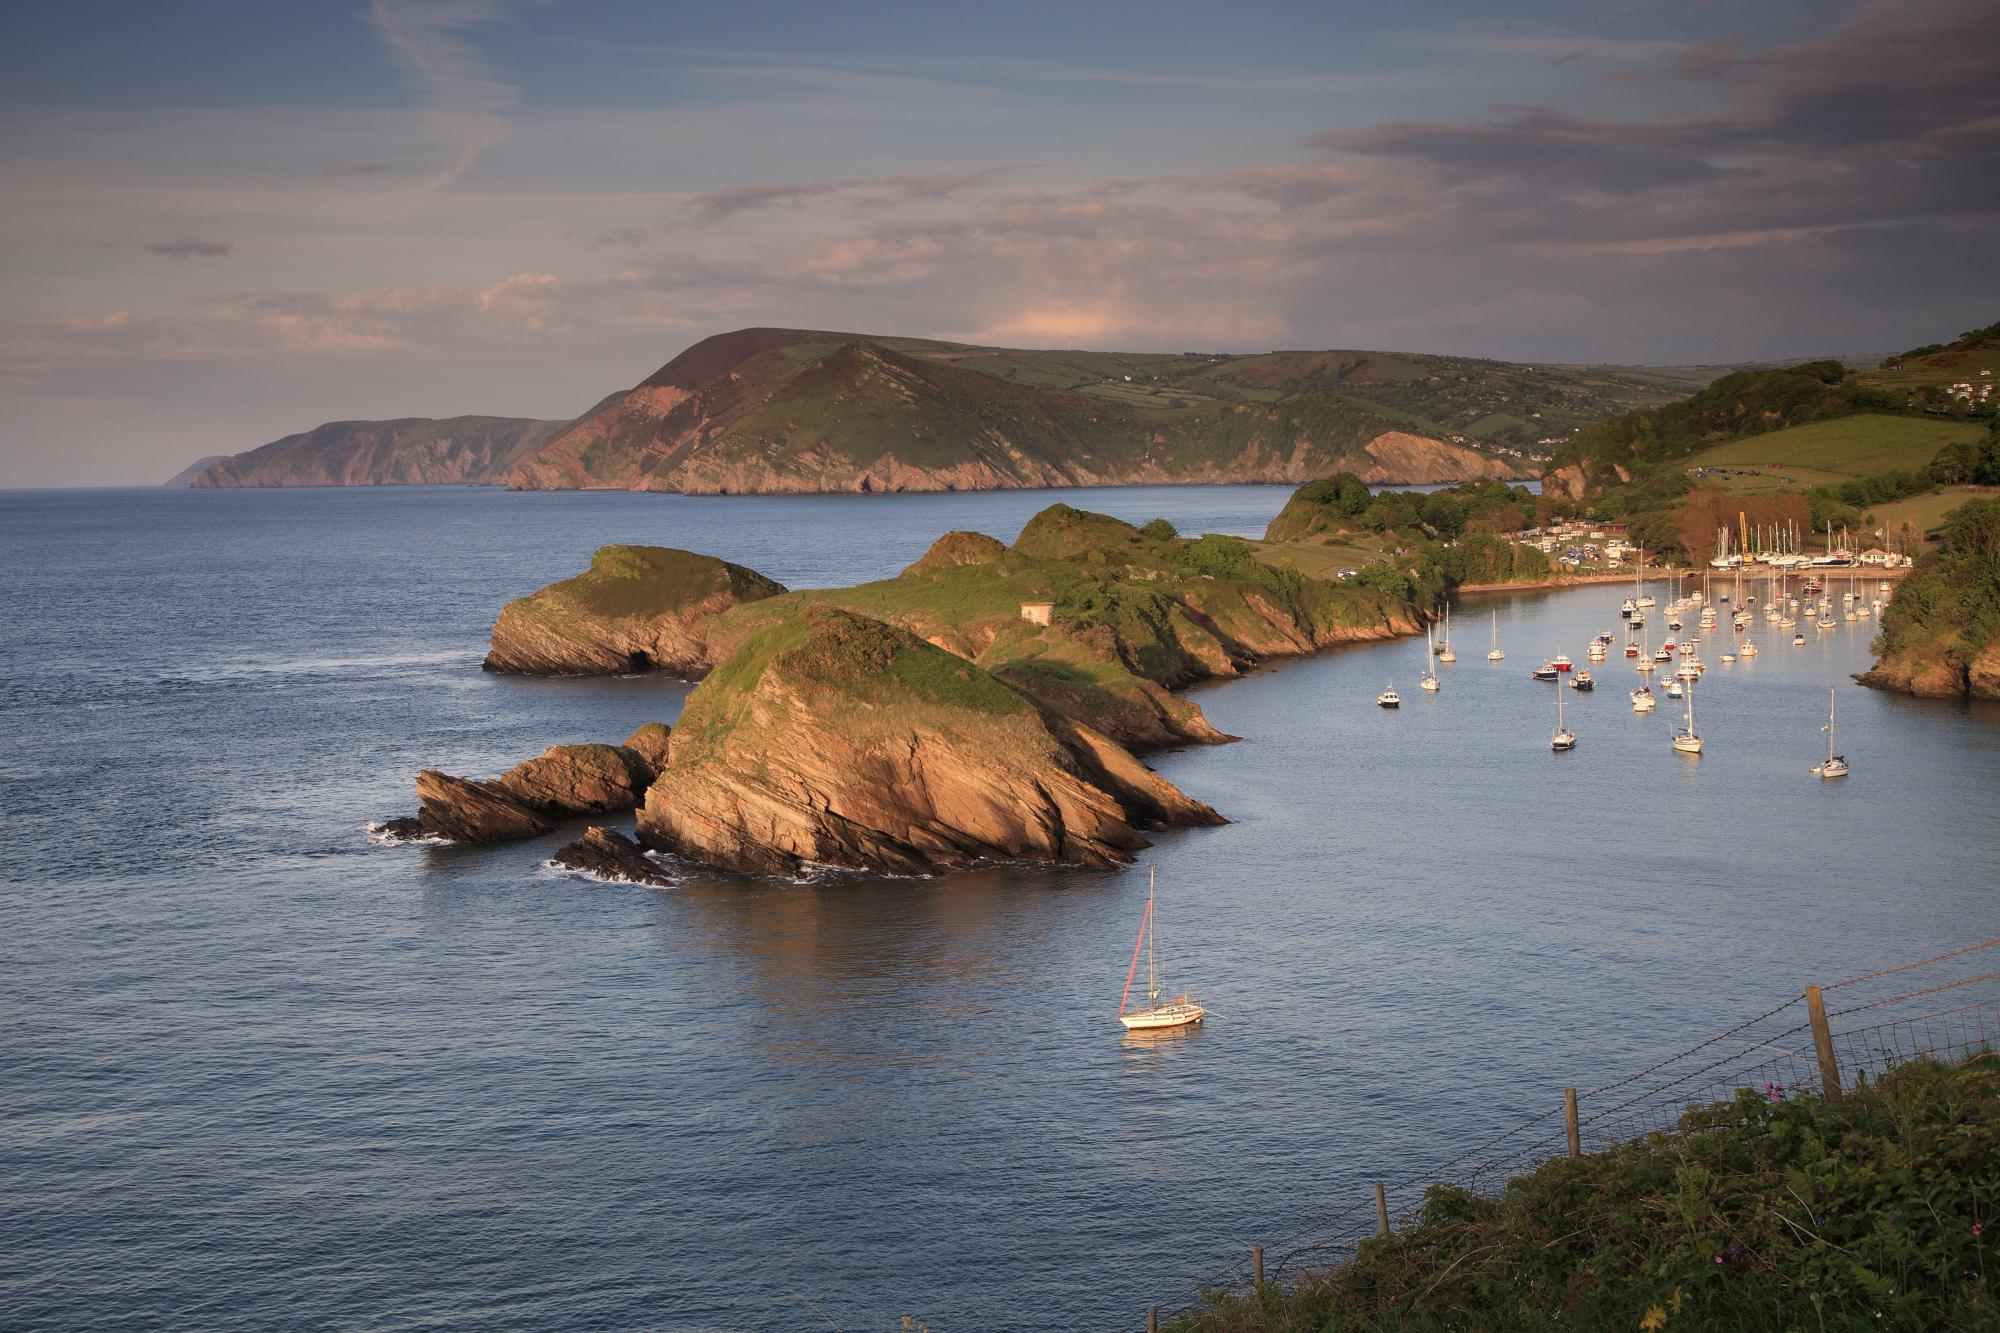 Ilfracombe Camping | Best campsites in Ilfracombe, Devon